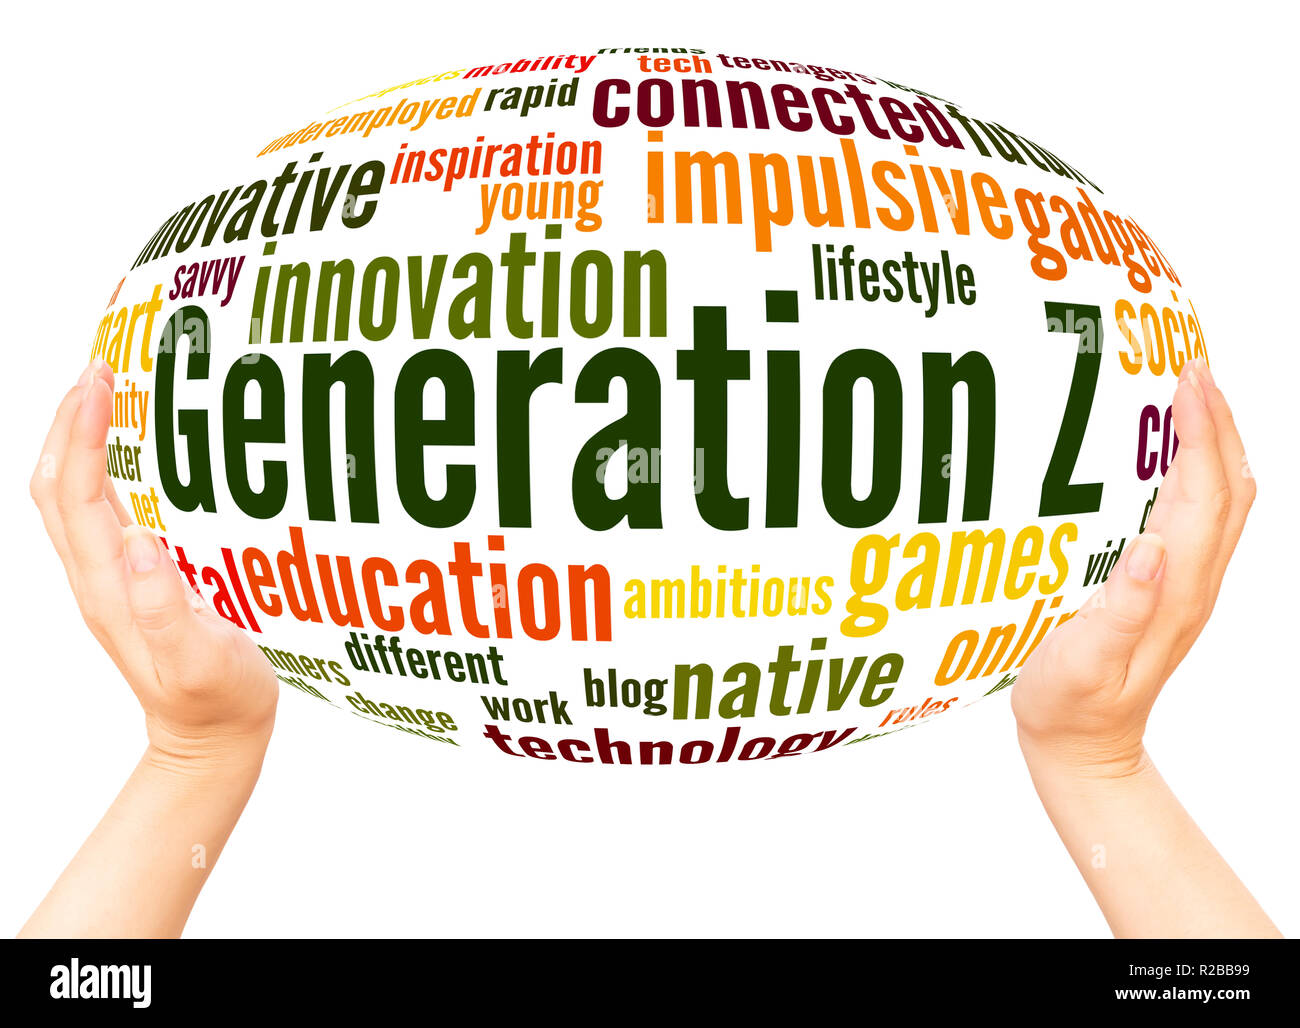 Generation Z word cloud hand sphere concept on white background. - Stock Image